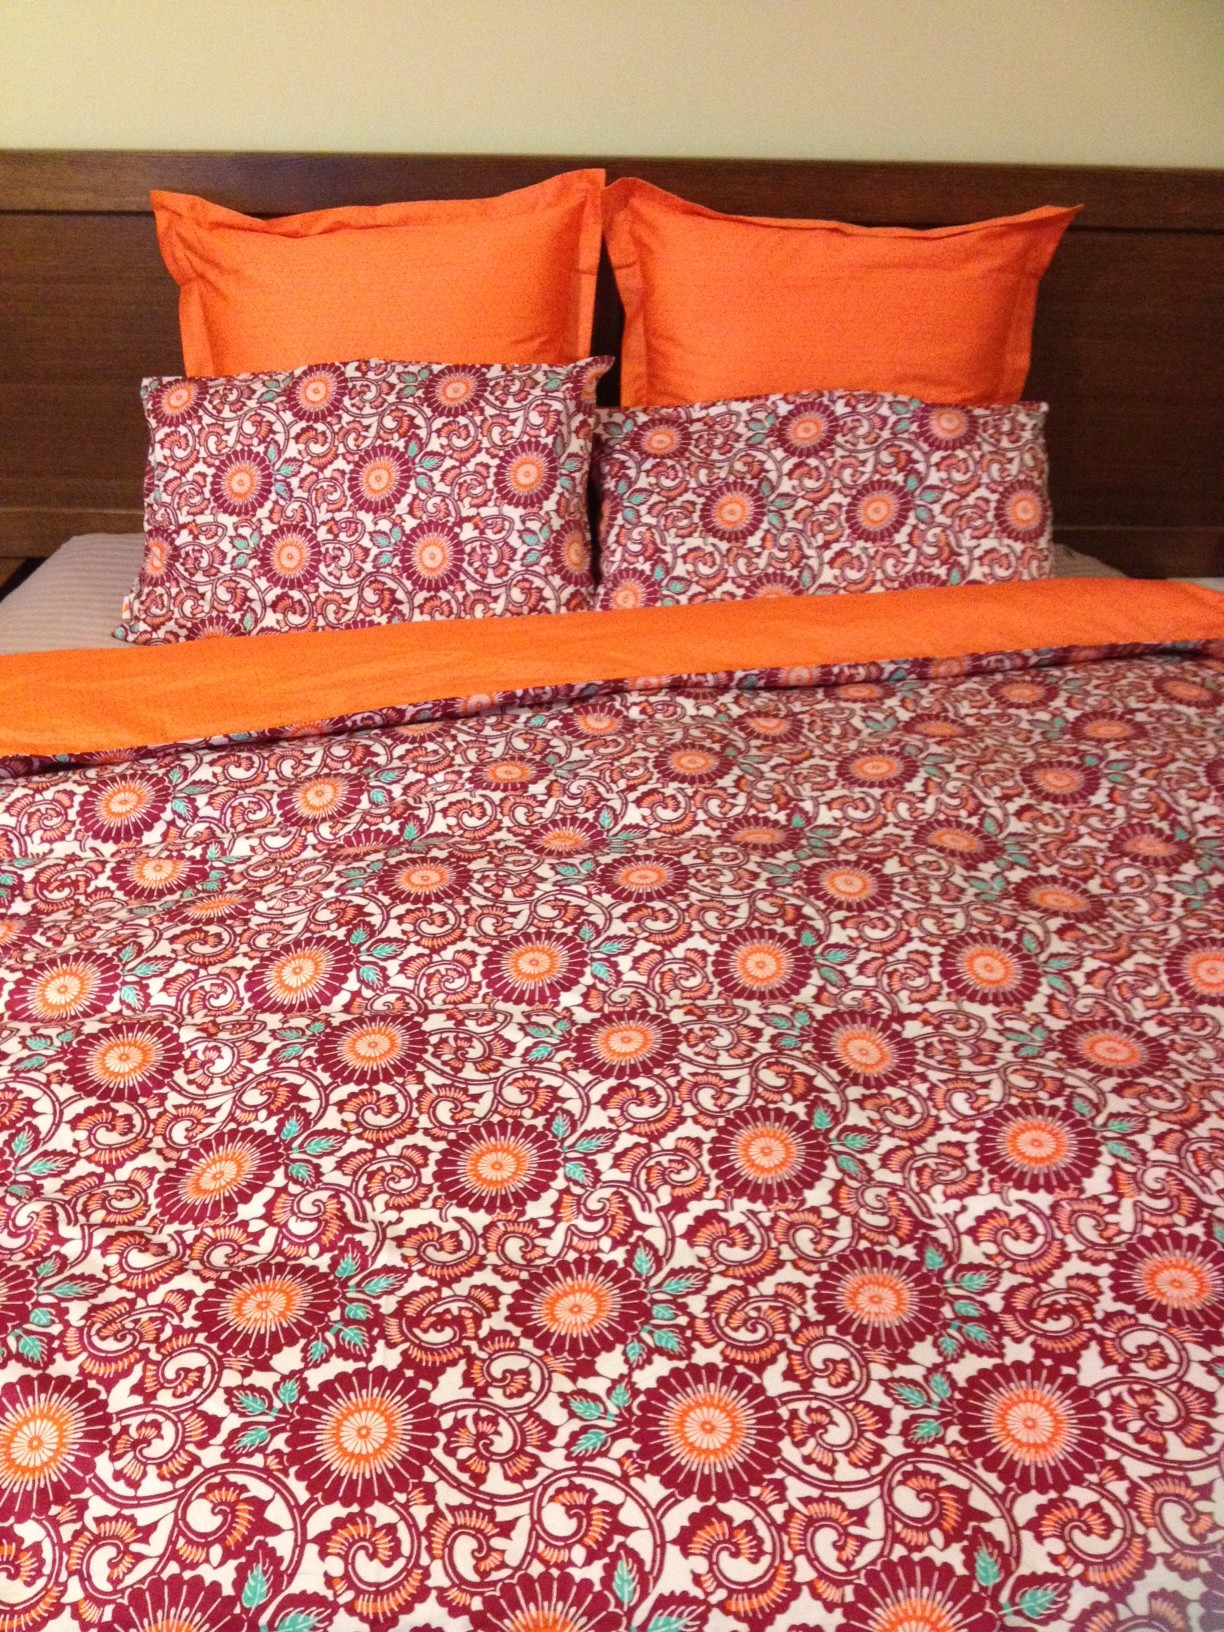 Duckprint – 'Retro Vibe' Doona Cover Set